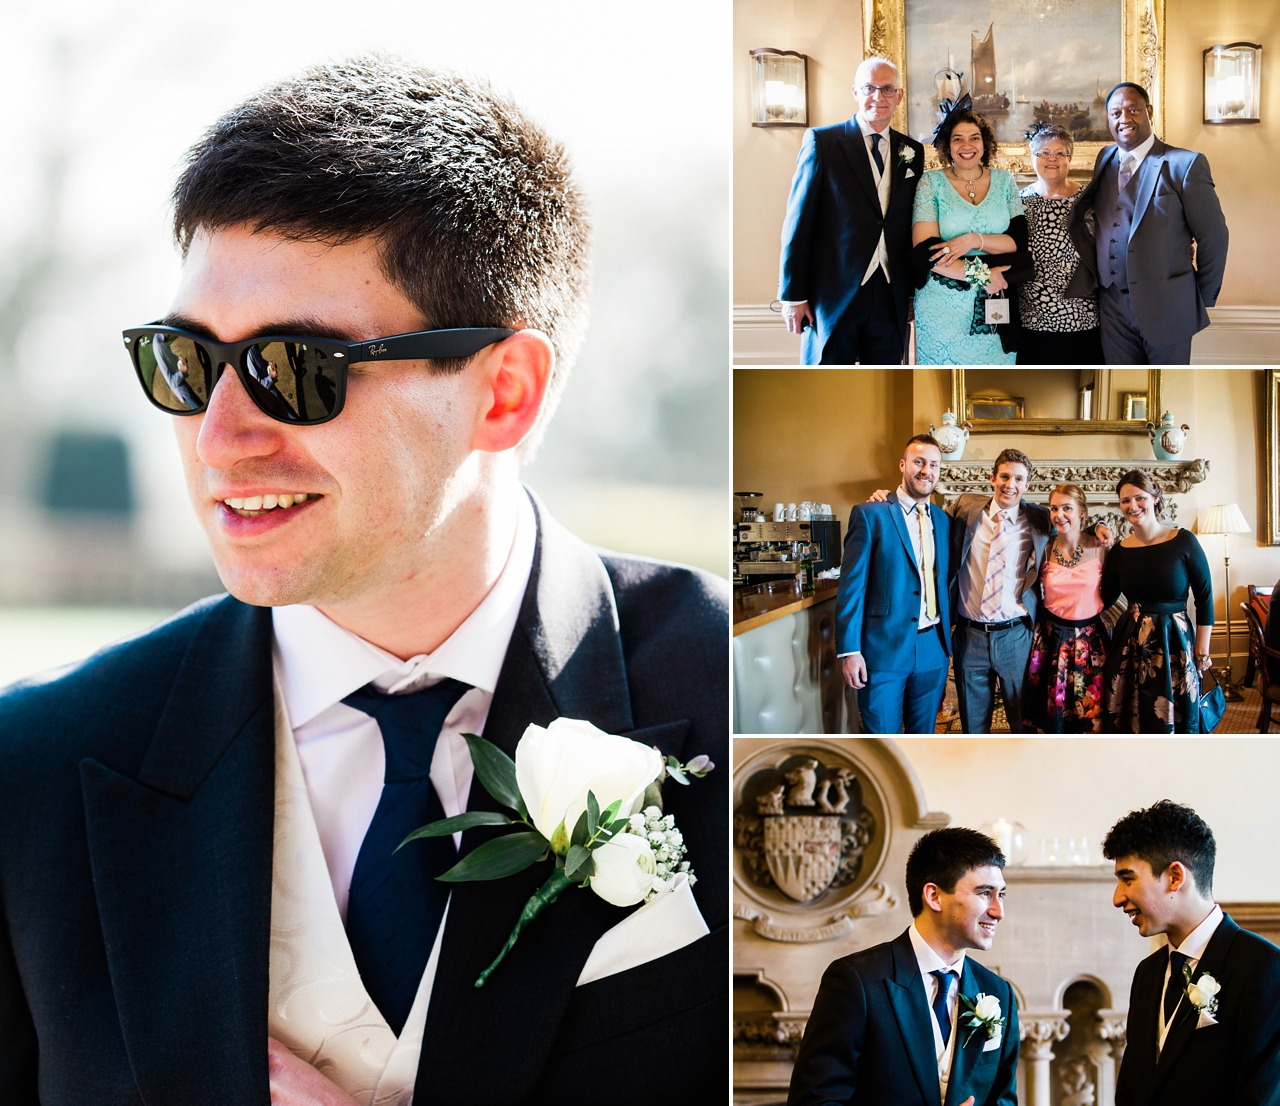 Candid portraits of groom and family